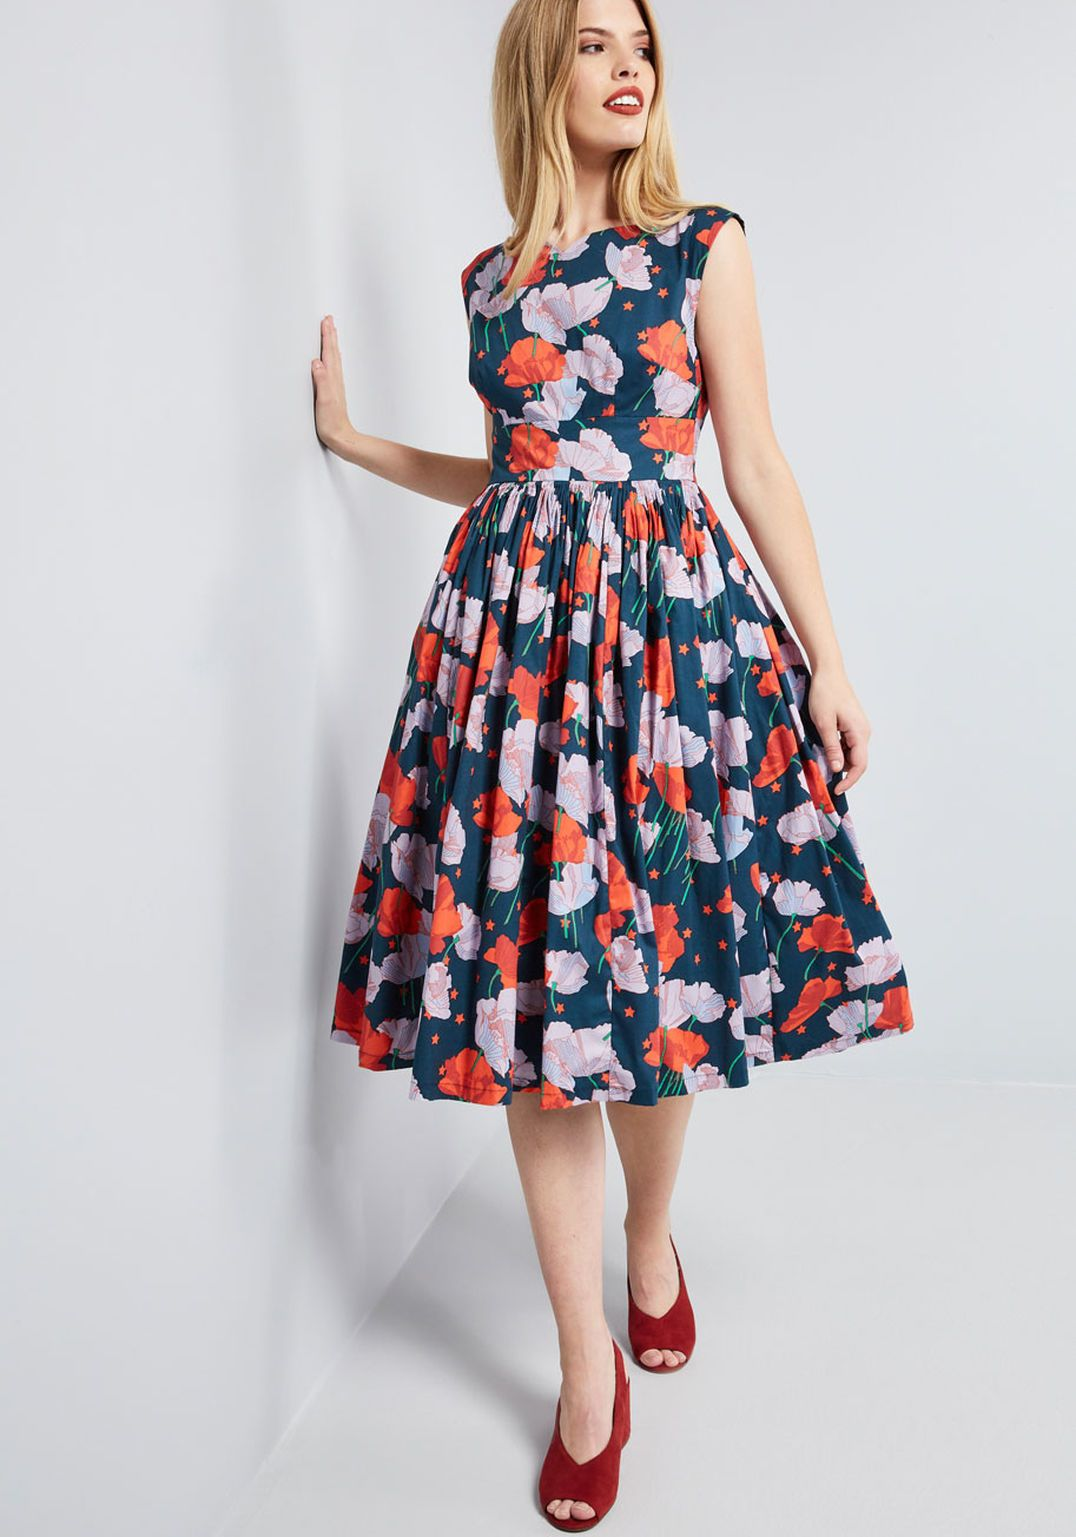 Fabulous Fit And Flare Dress With Pockets Flare Dress Fit And Flare Fit And Flare Dress